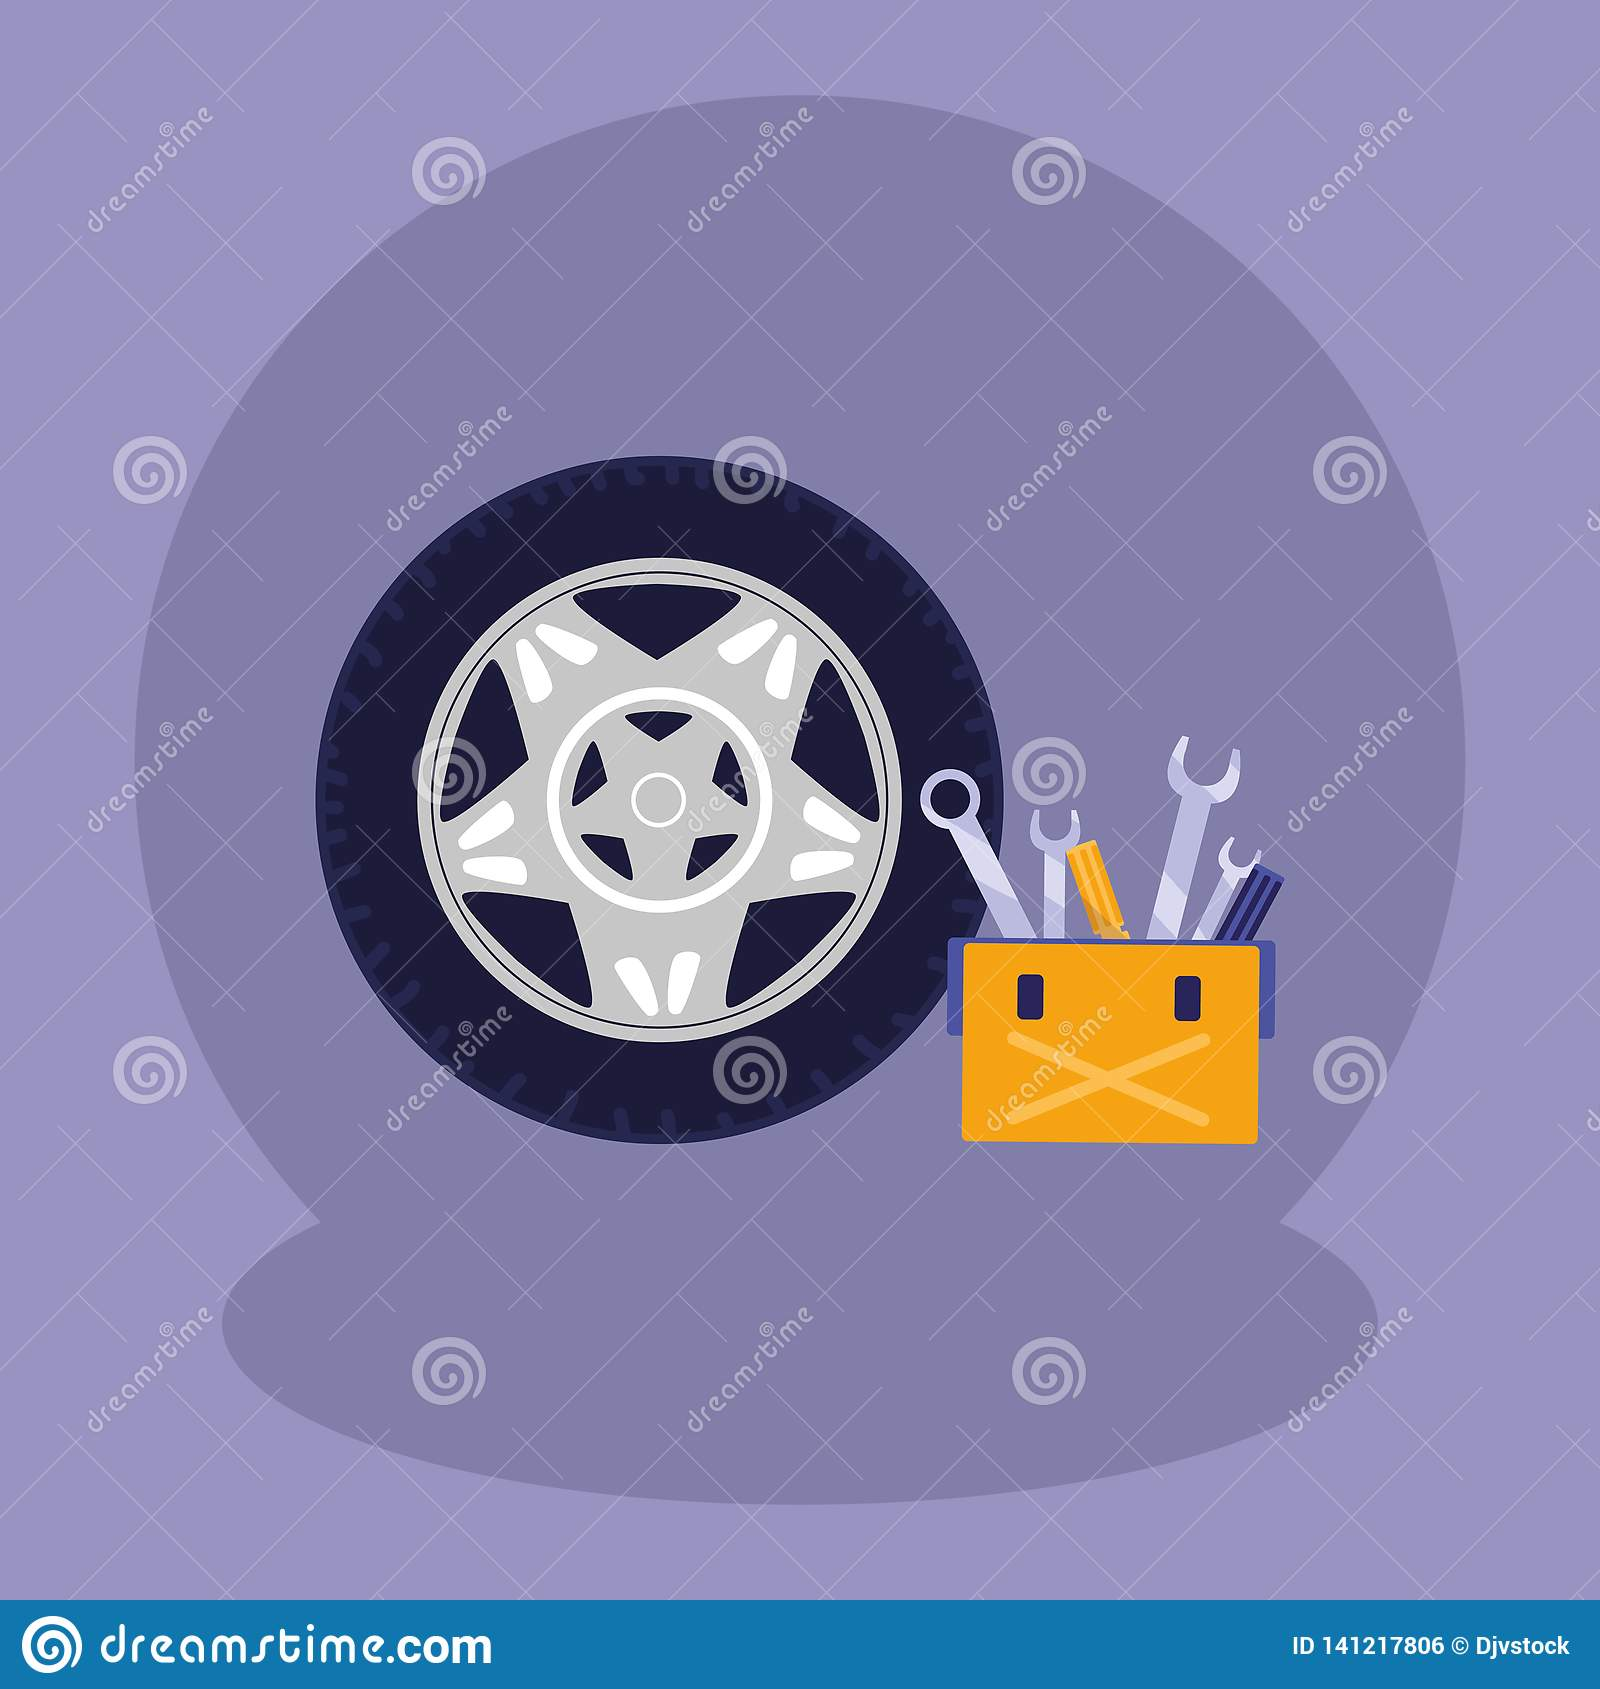 Tools Box Mechanic With Tire Track Stock Vector - Illustration of